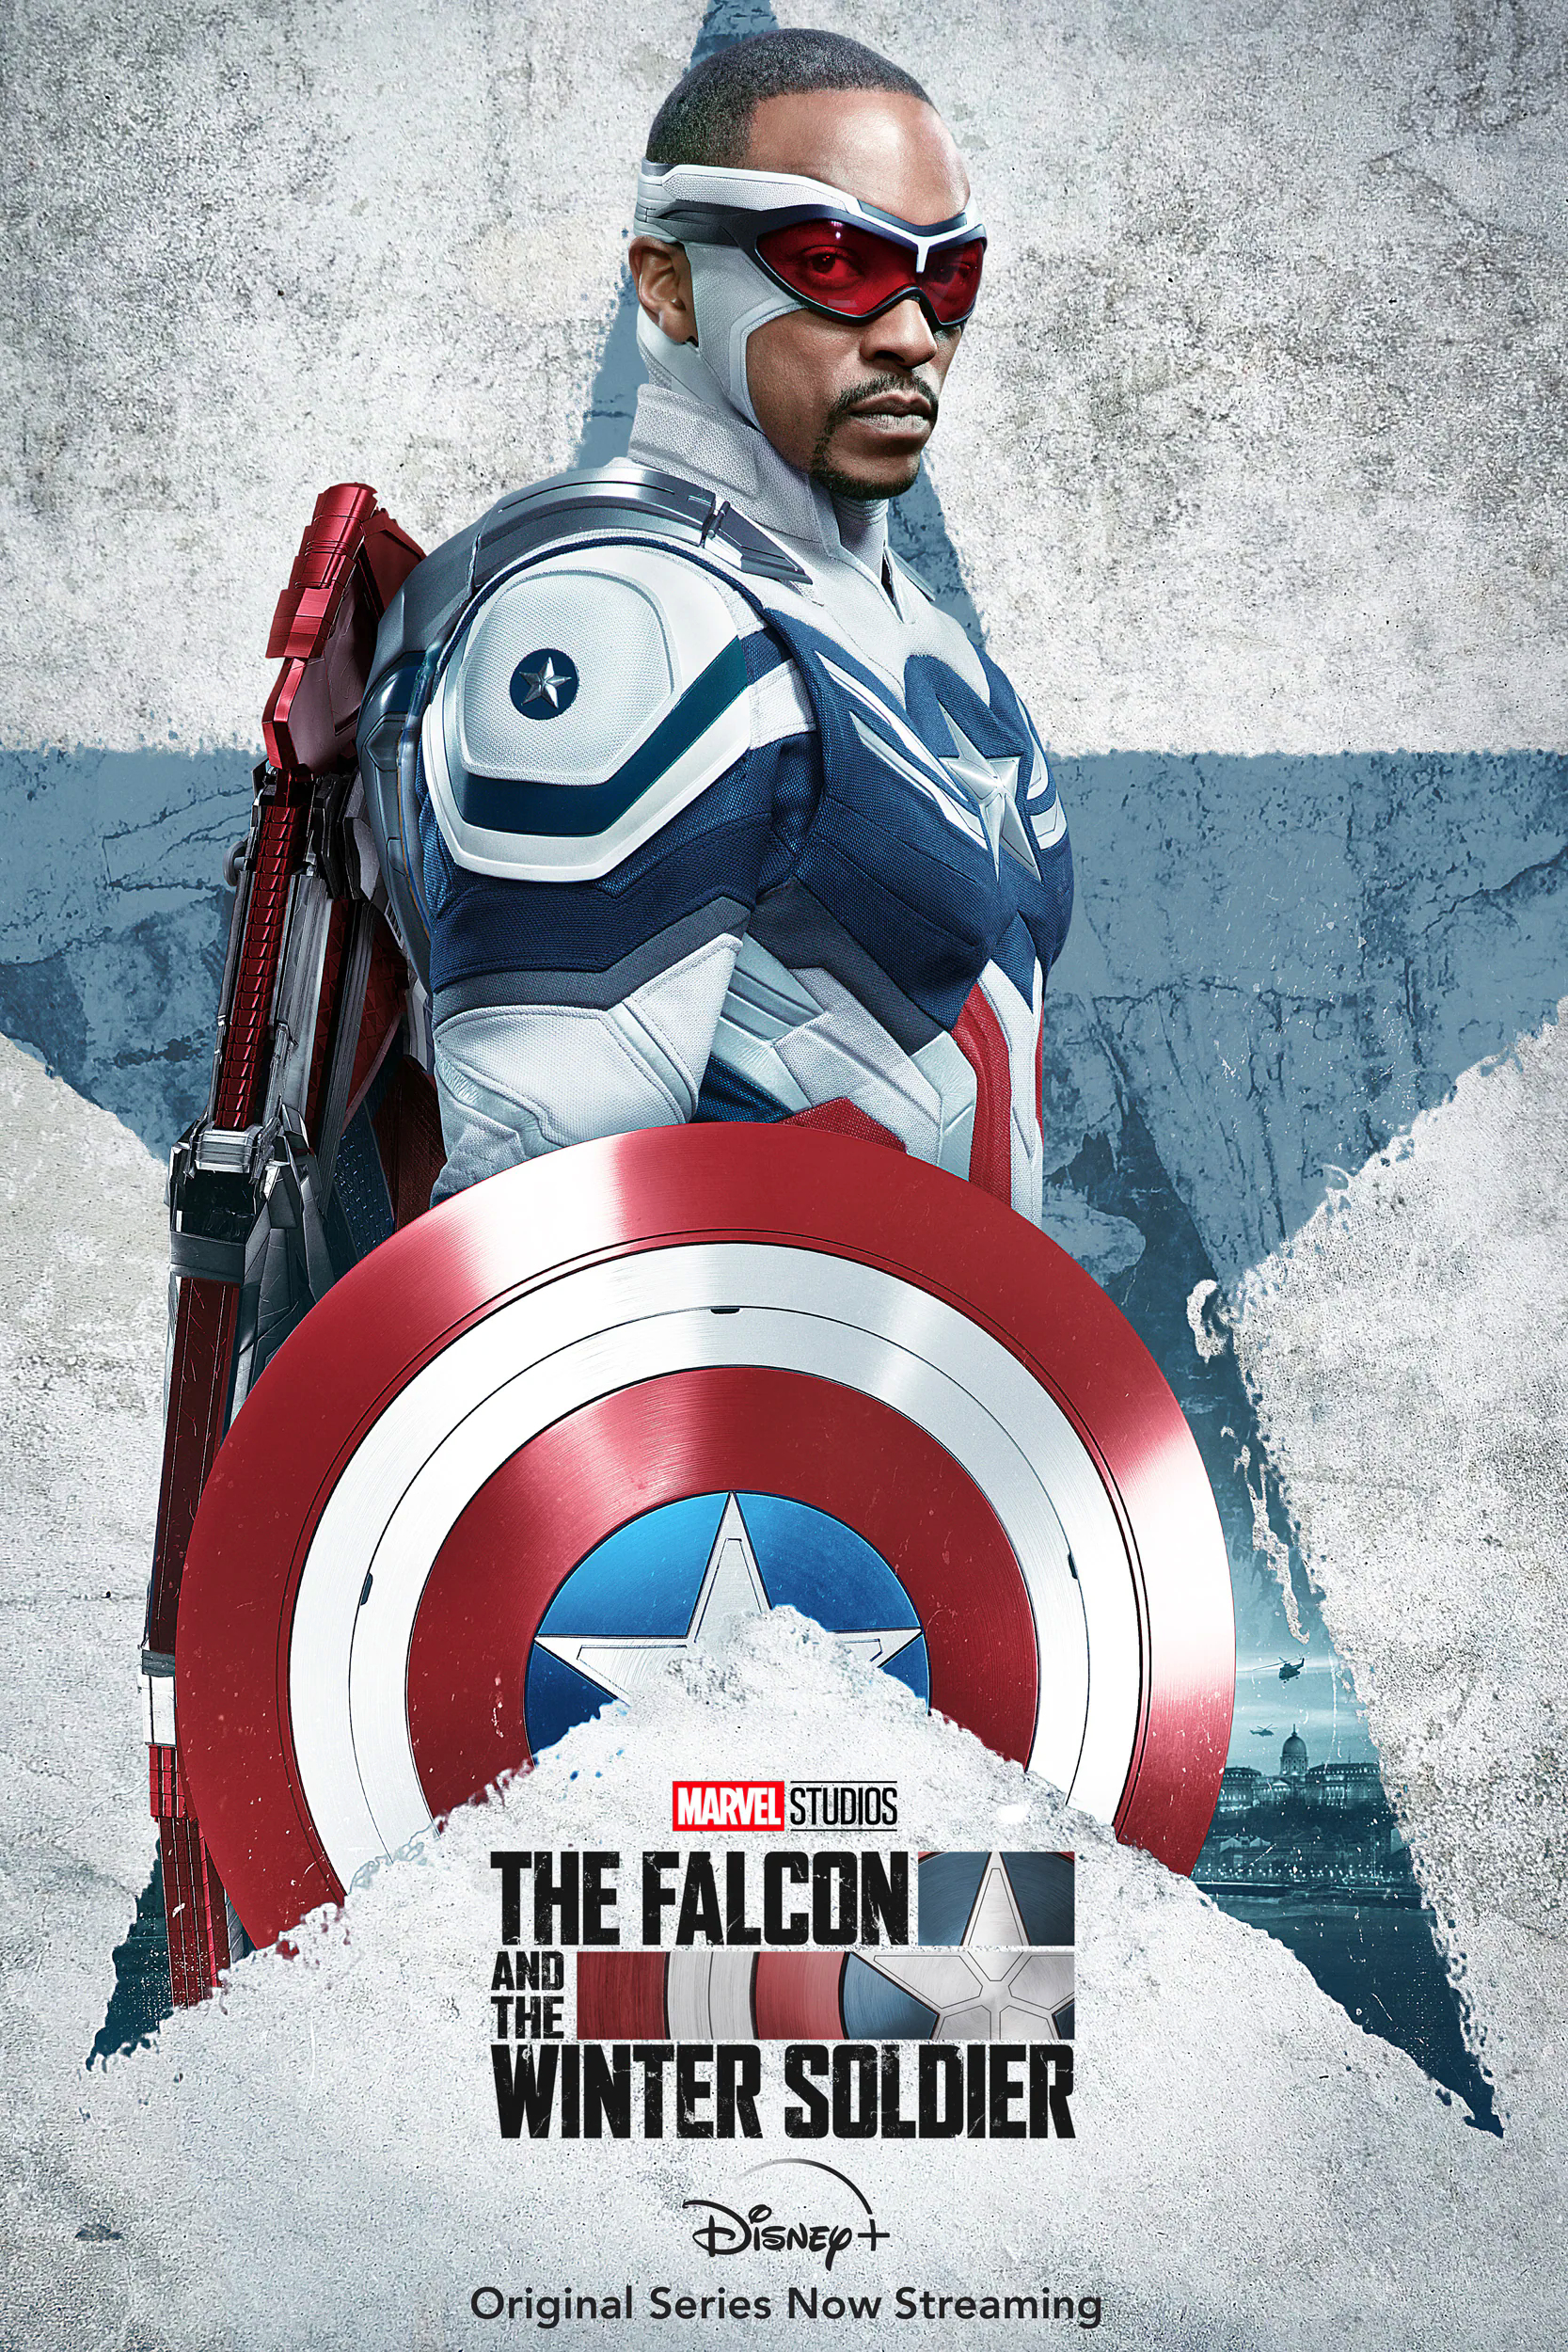 Falcon And The Winter Soldier Captain America/Sam Wilson Poster